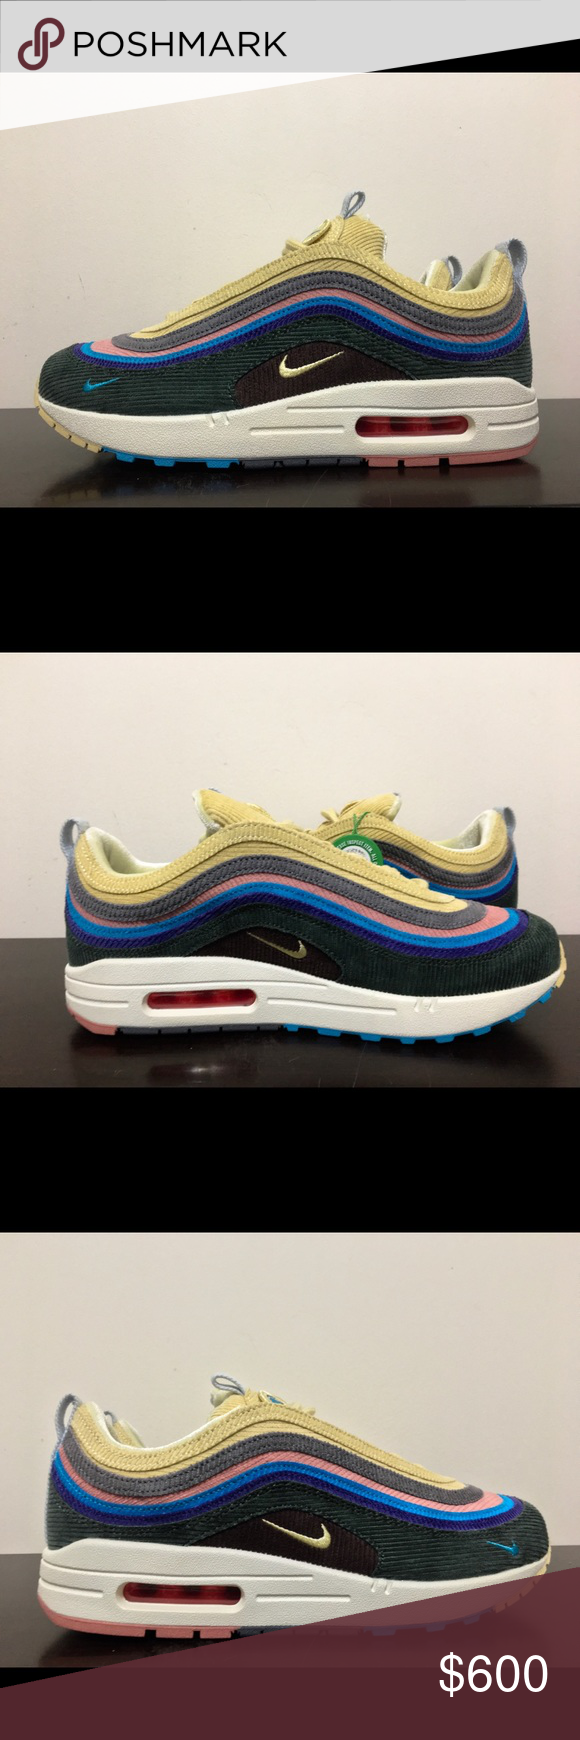 big sale 1d9b9 a848d Air Max 1/97 Sean Wotherspoon Rare and great looking shoe ...